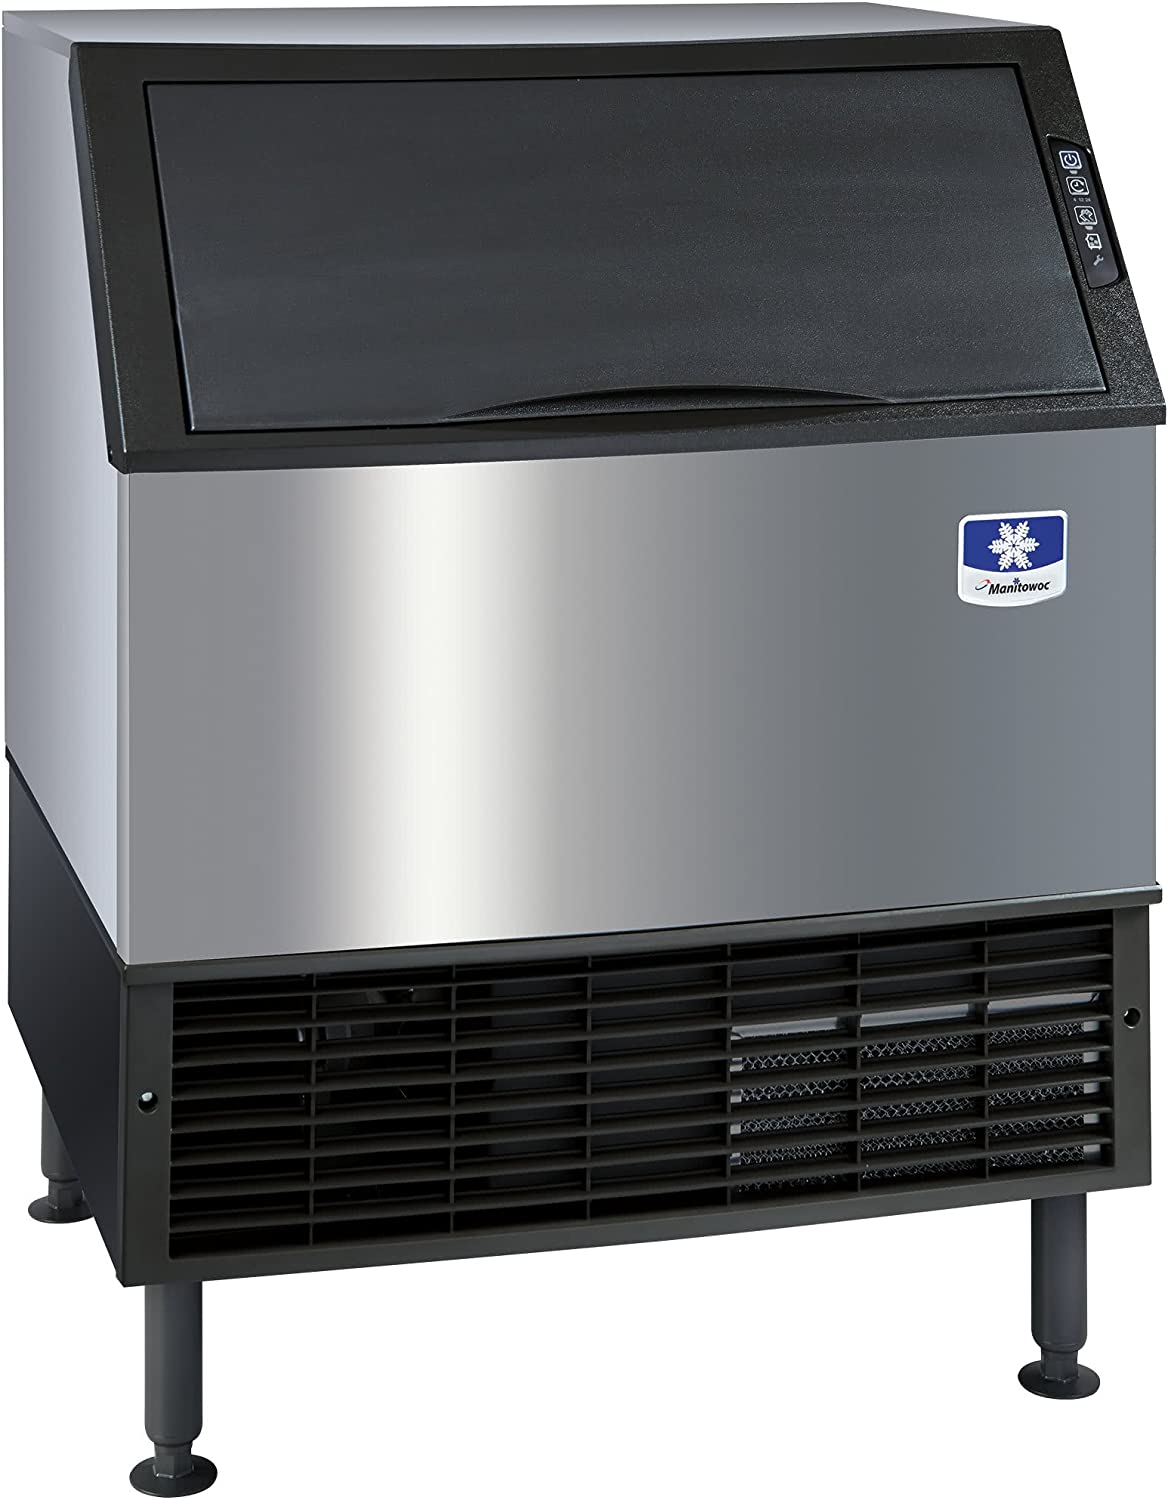 Manitowoc UD0310A-161 UD0310A NEO U-310 Undercounter Ice Cube Machine, 115V, Dice Cube Air Cooled